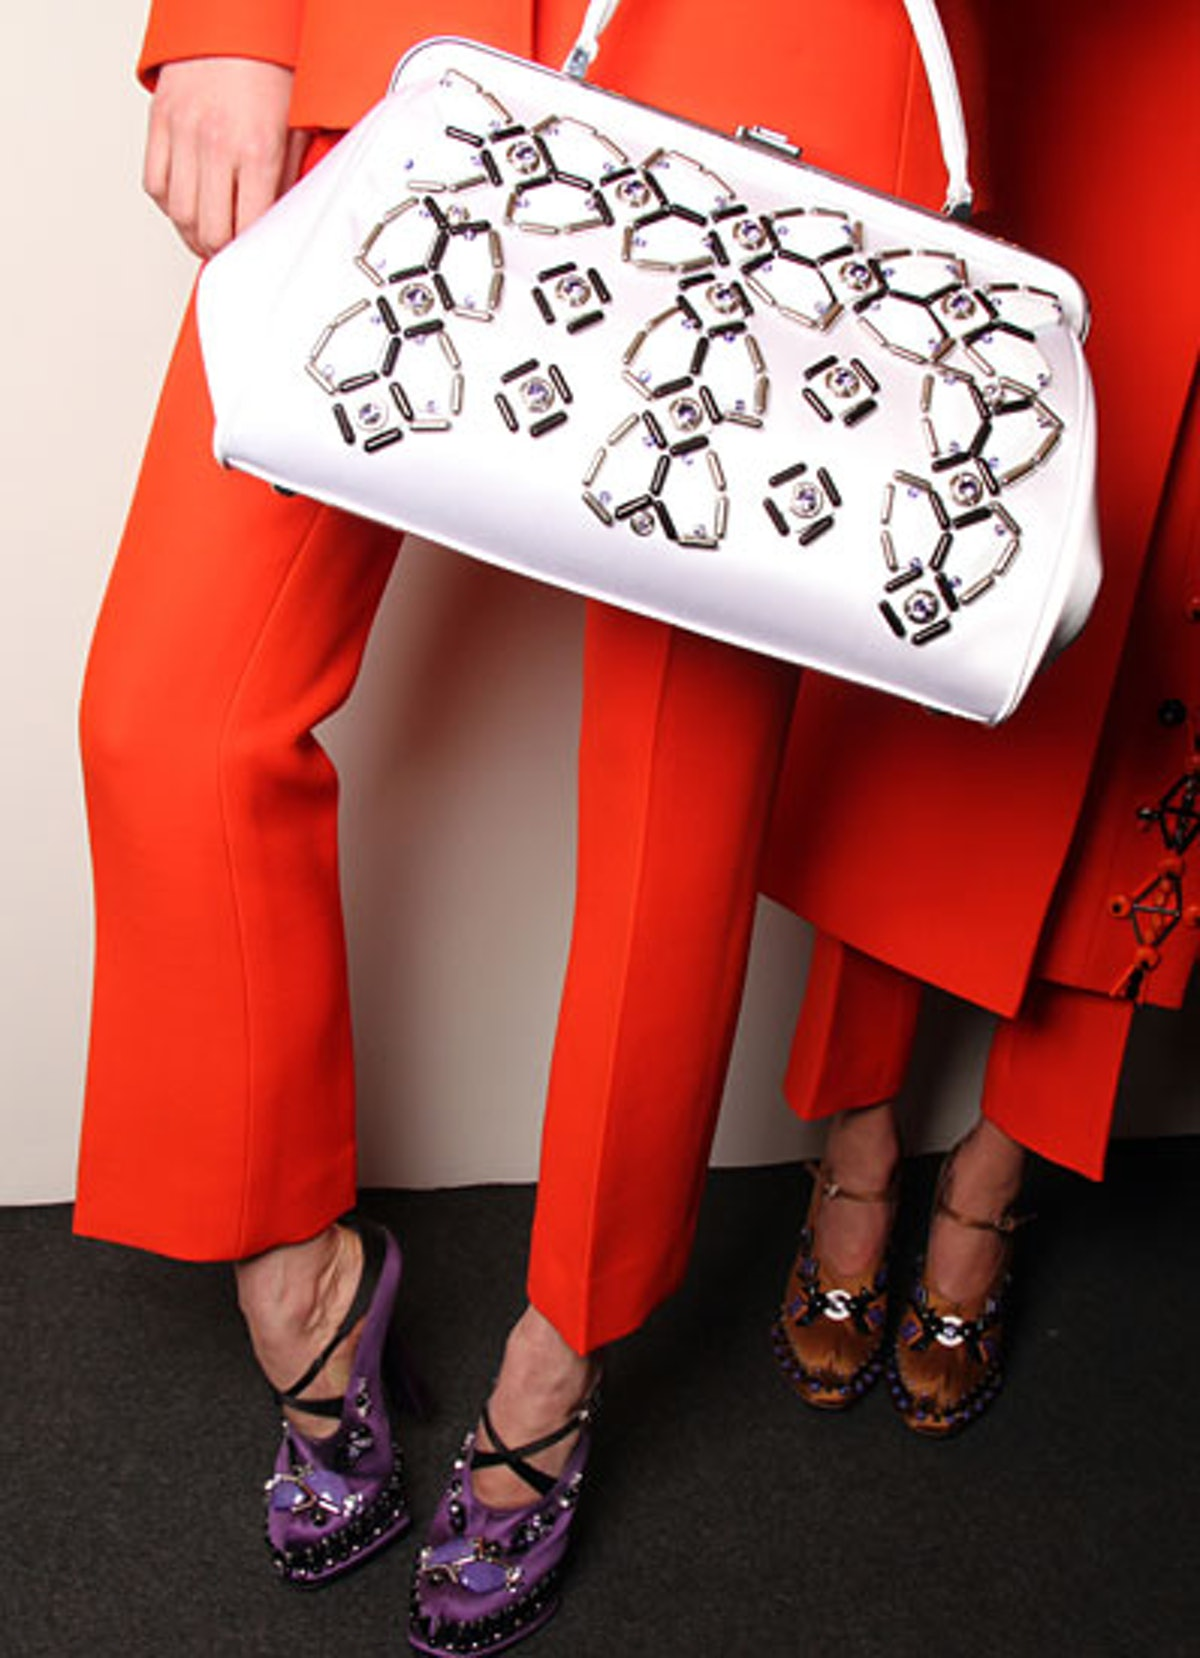 acss-fall-2012-accessories-roundup-03-v.jpg